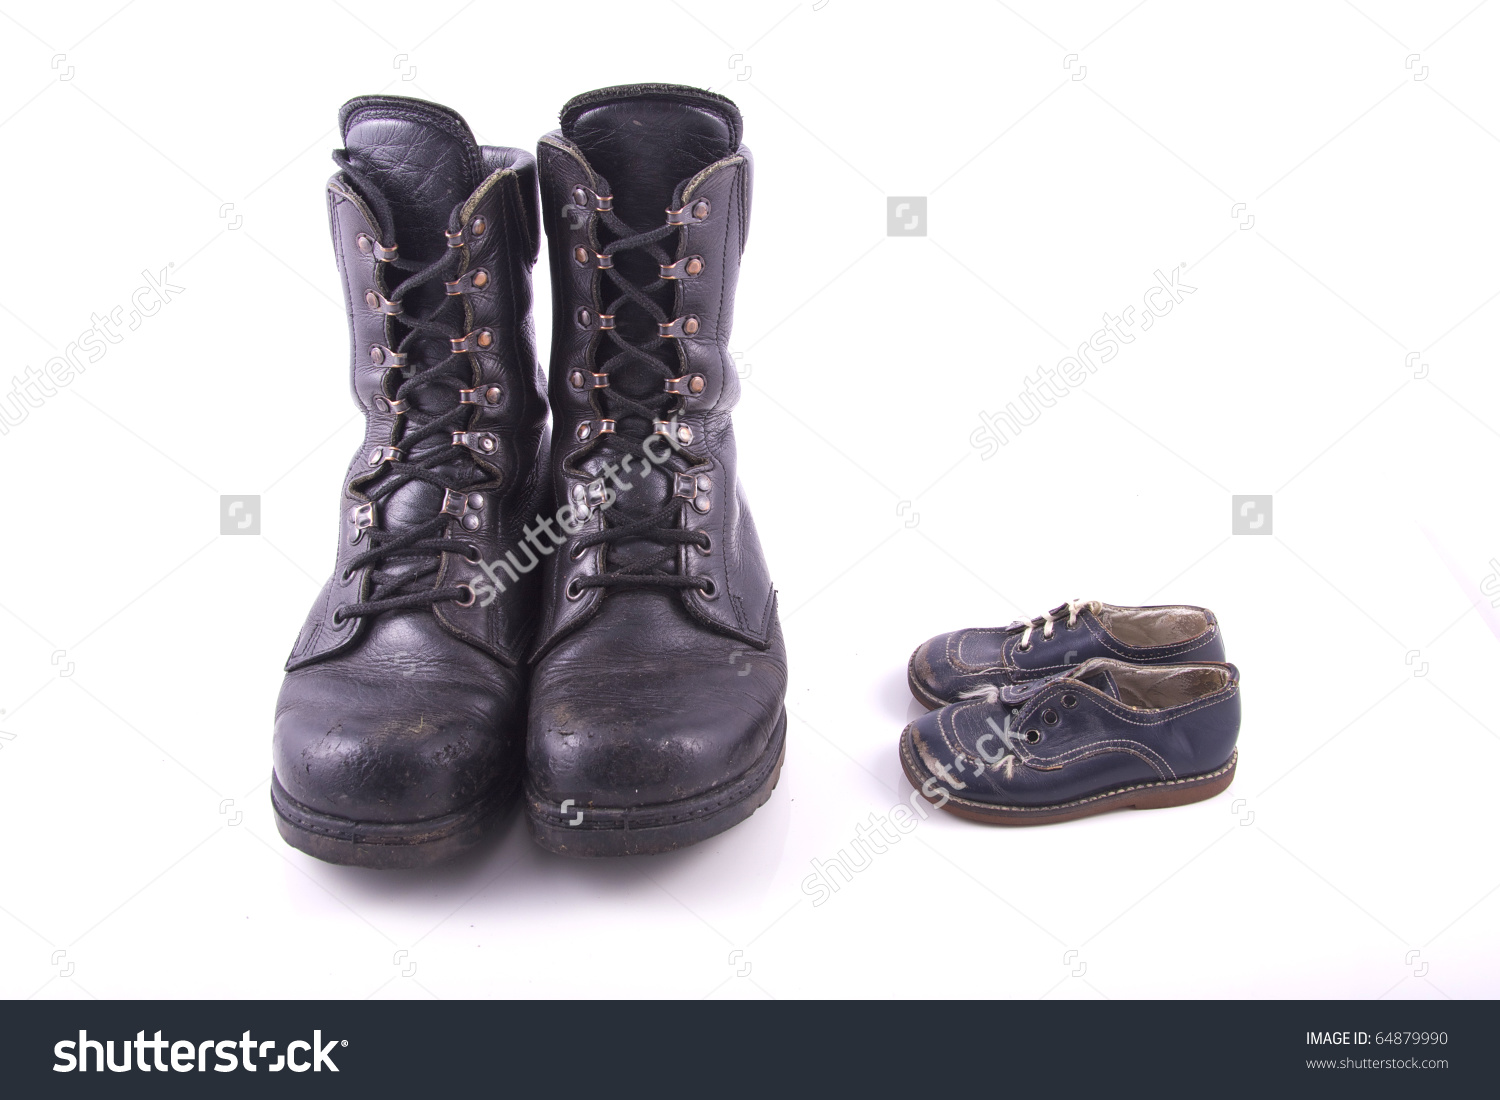 Baby Combat Boots YljYC443